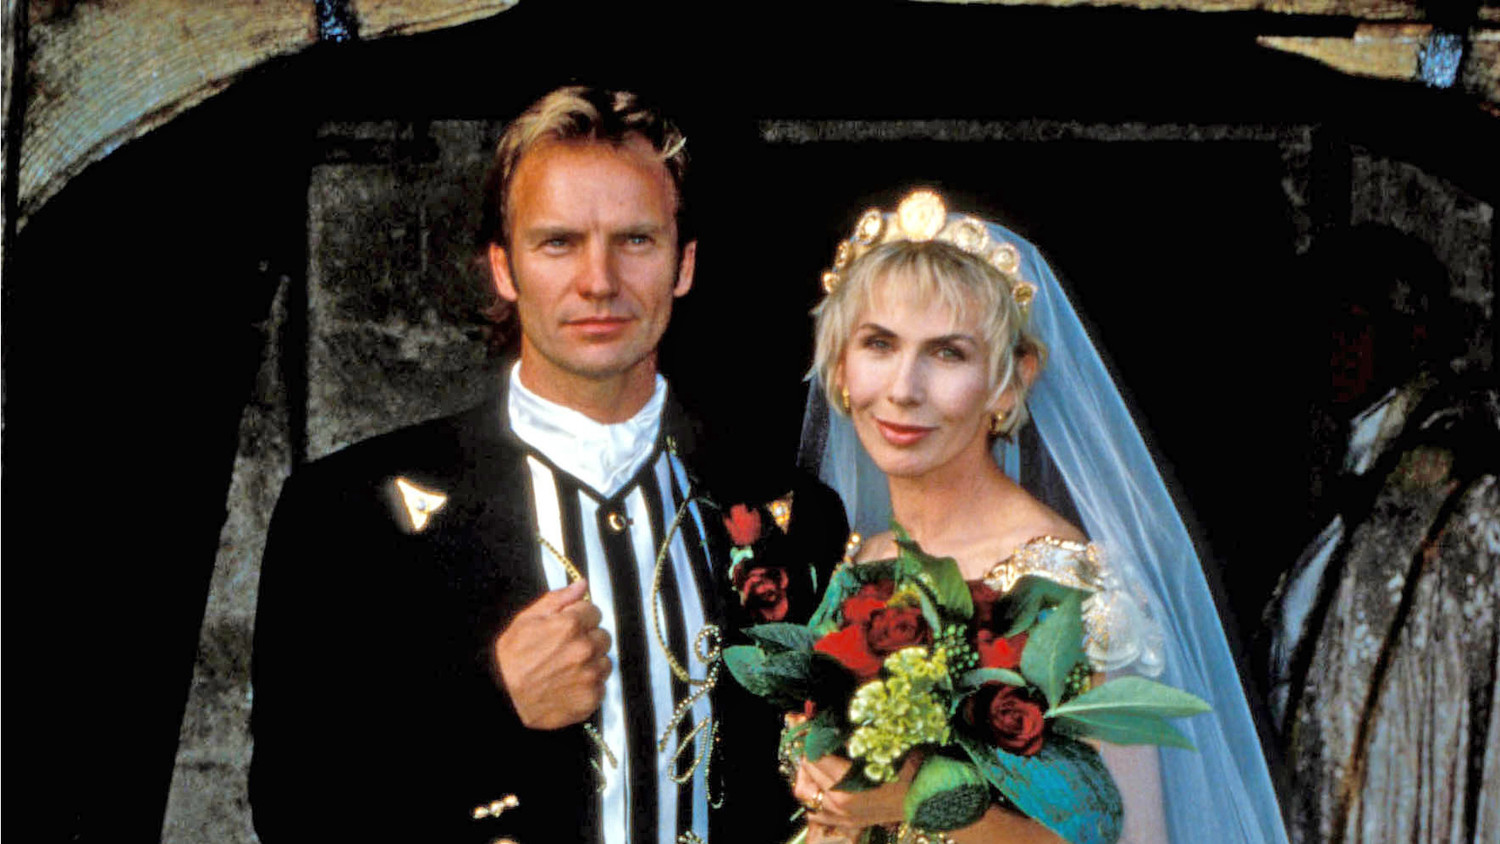 Ways to get inspired by sting and trudie styler s romantic meets